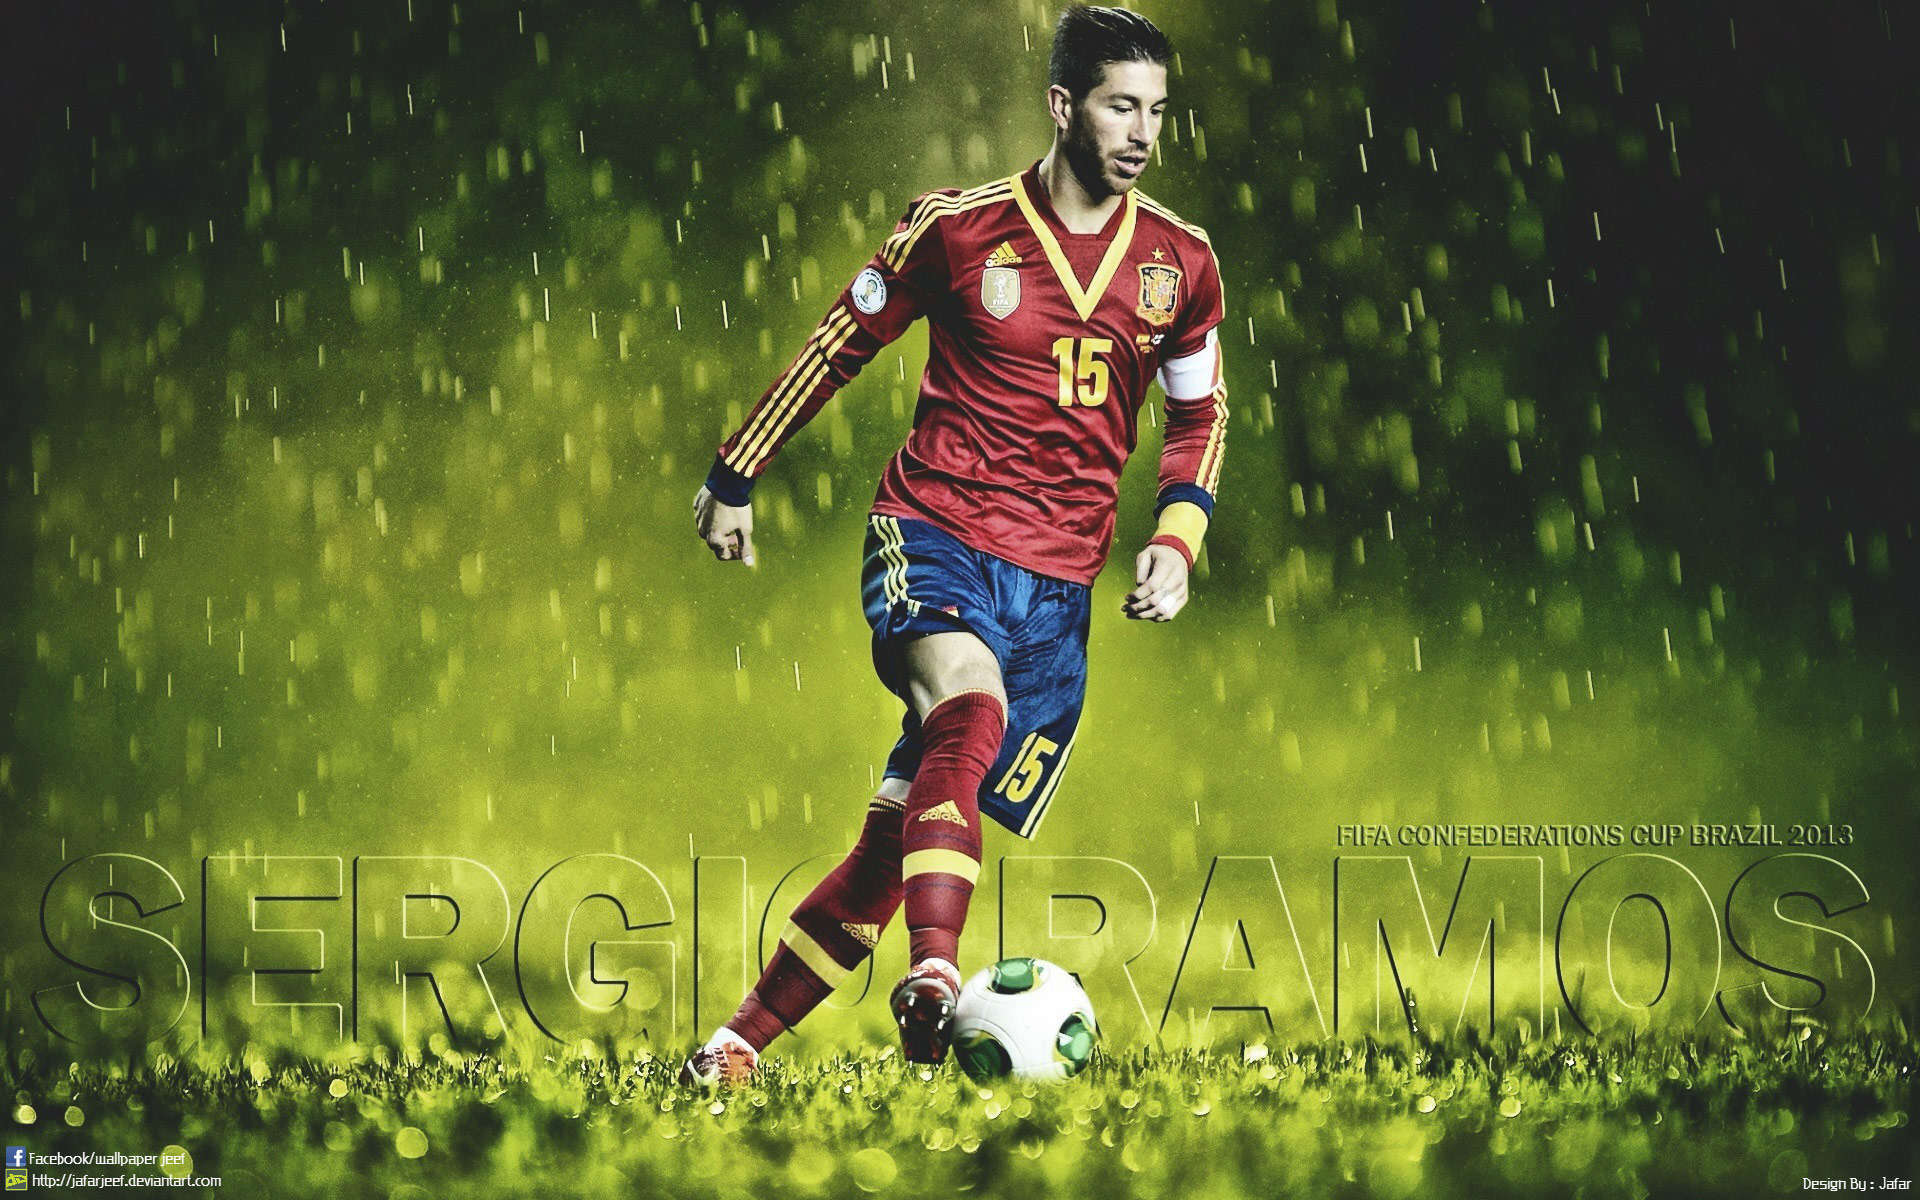 Real Madrid Wallpaper Full Hd Sergio Ramos Wallpapers High Resolution And Quality Download